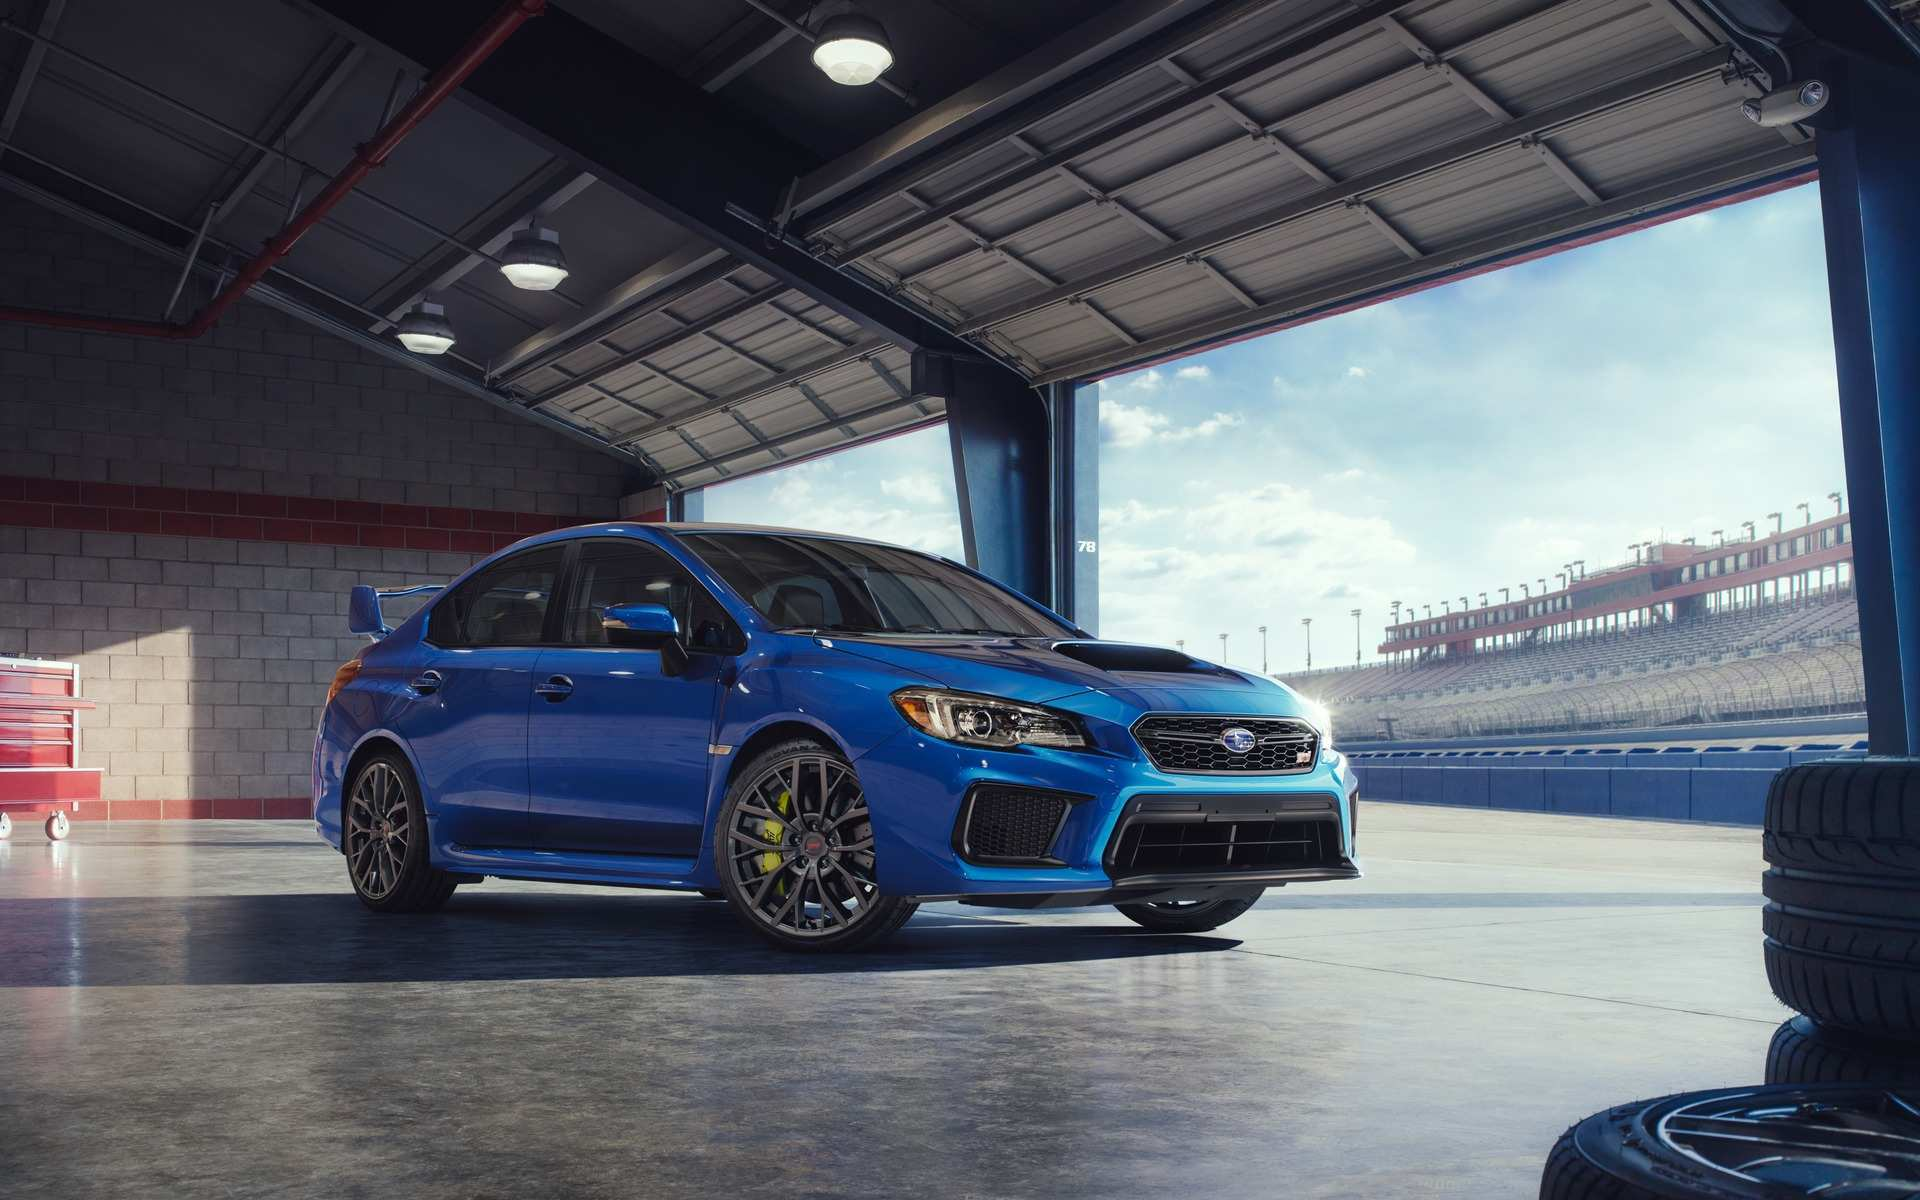 27 All New 2019 Subaru Impreza Wrx Release Date And Concept